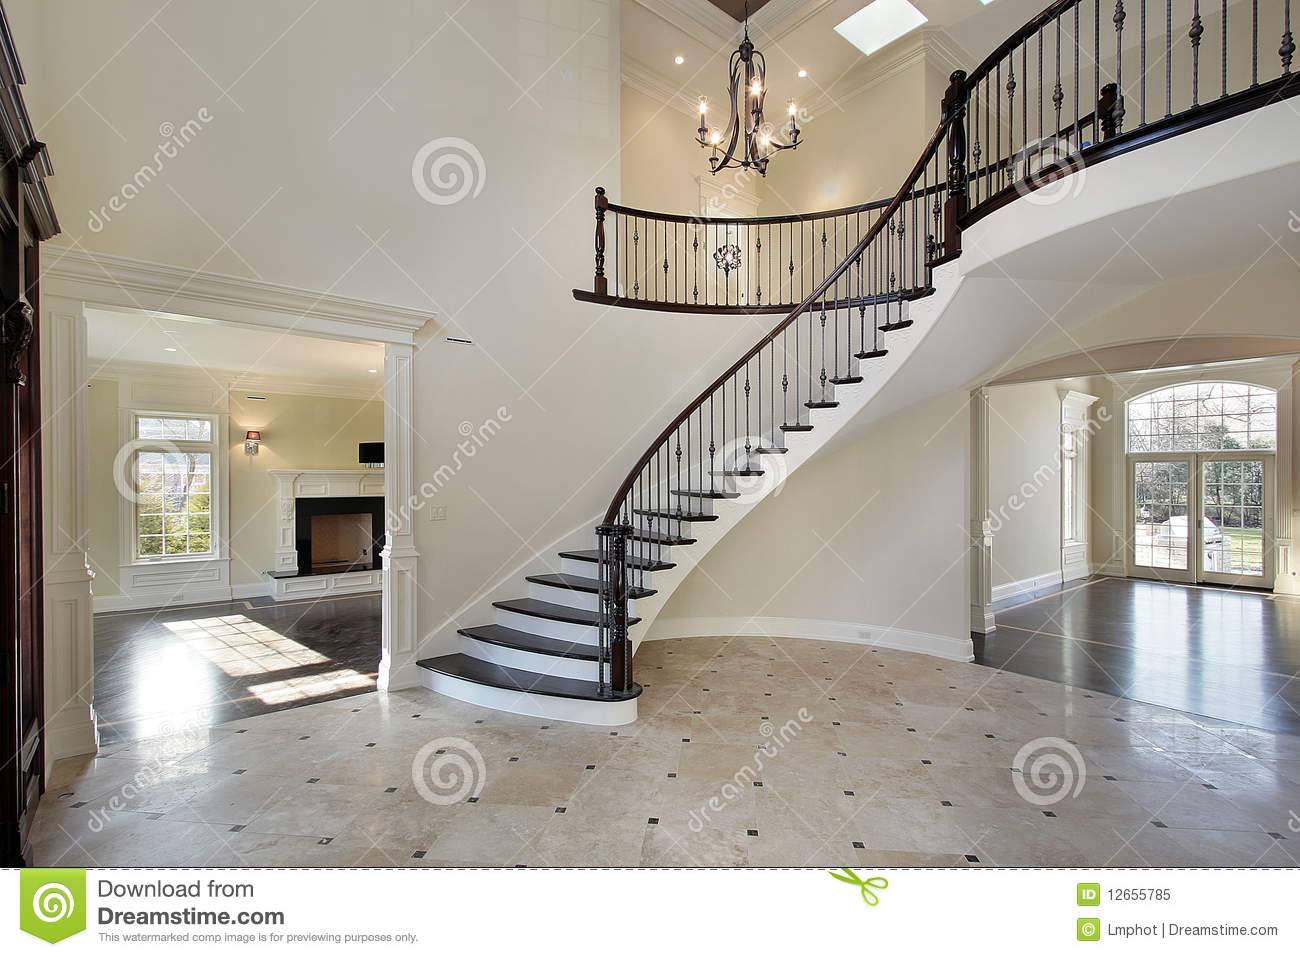 Foyer with circular staircase royalty free stock photo   image ...